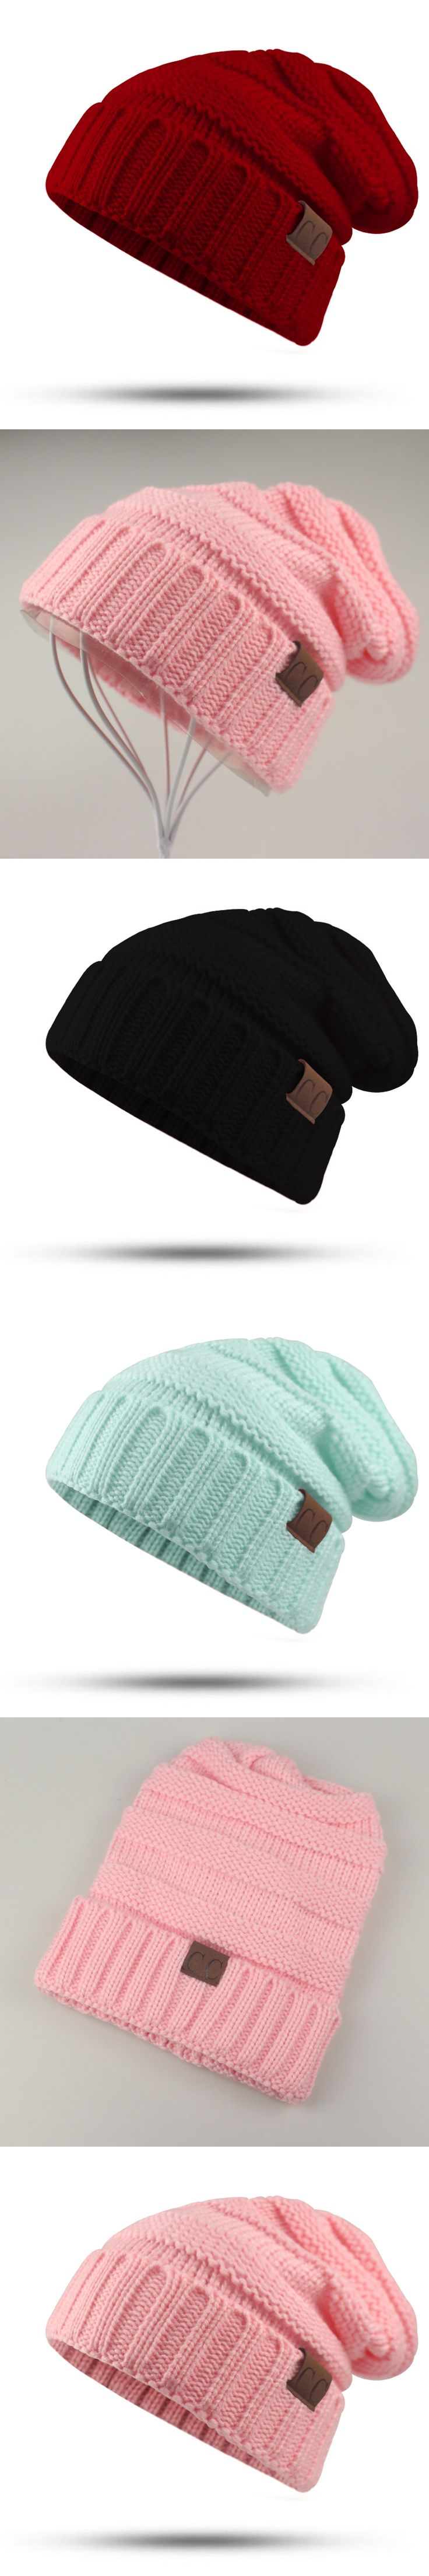 CC Labeling Winter Hat Female Male Unisex knitted Skullies Casual Hat For Men Women Solid Pink Skullies Autumn Beanies Caps